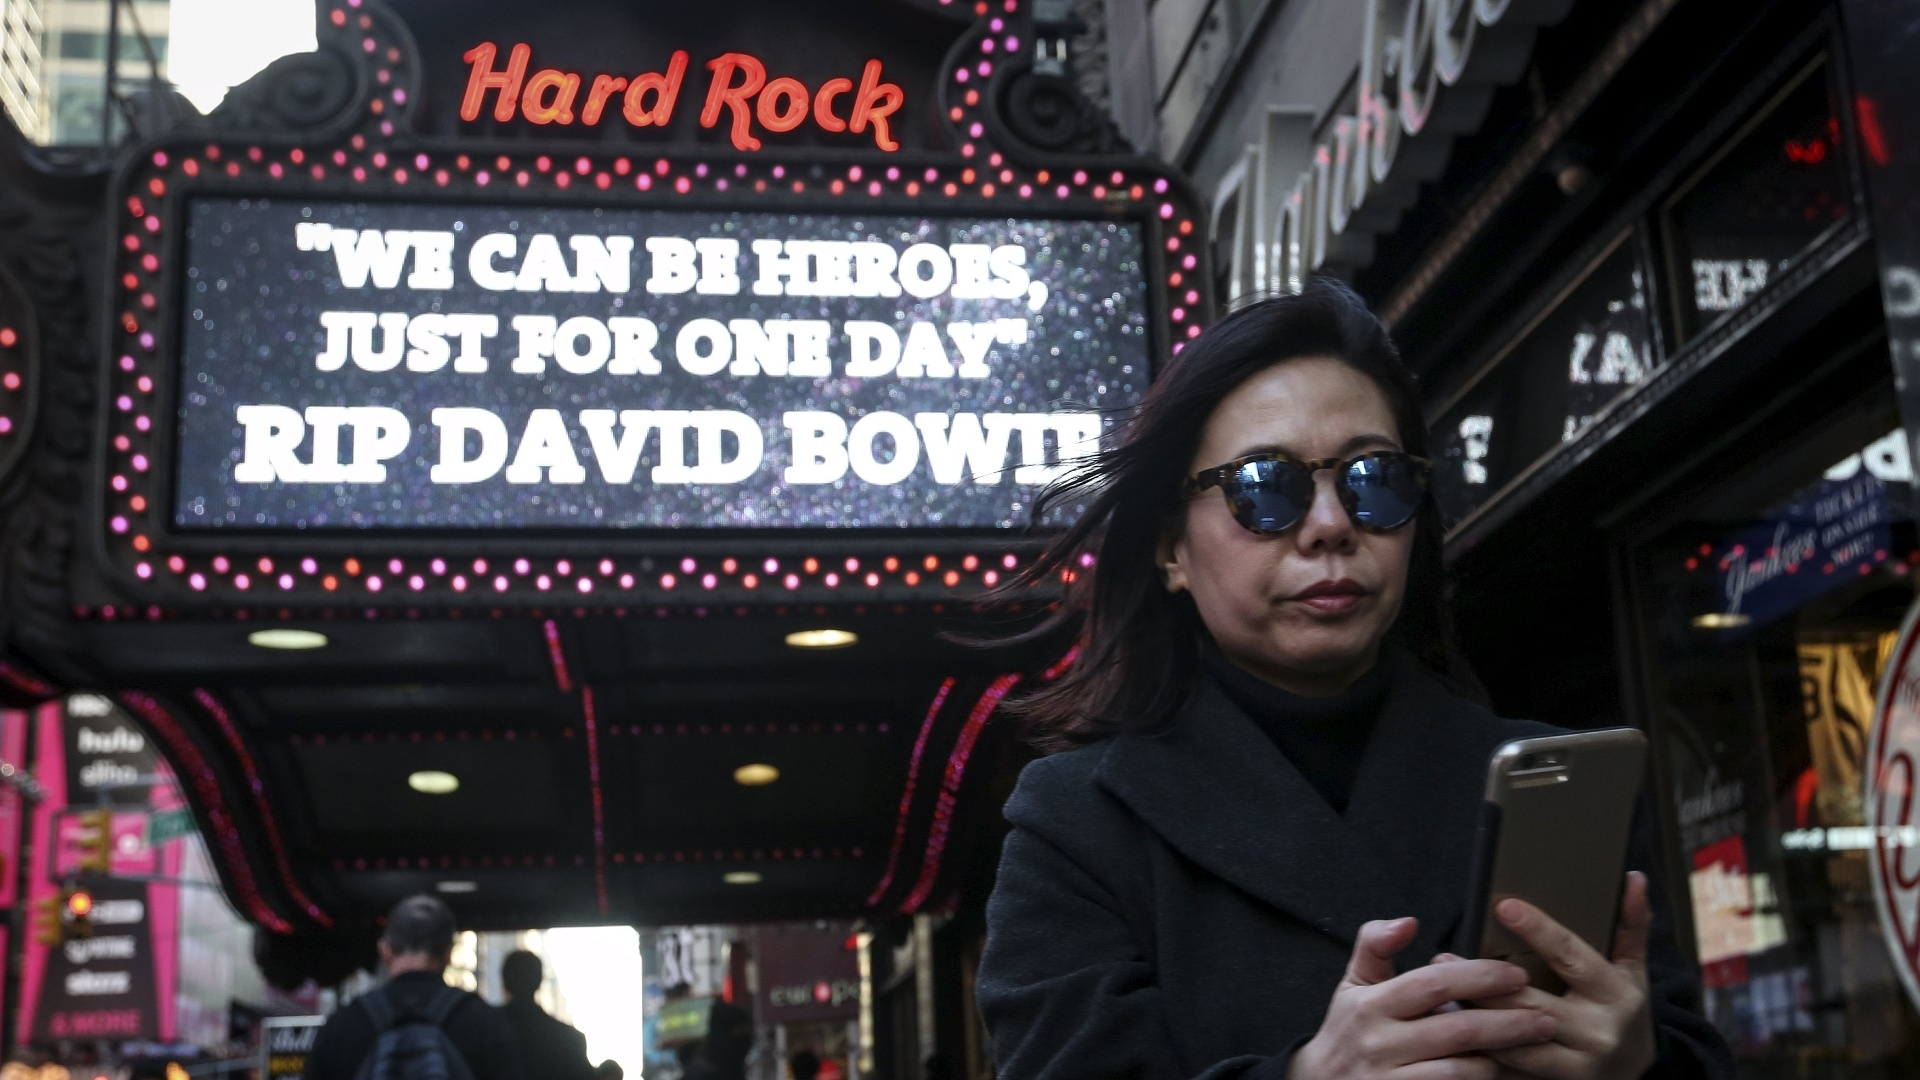 11.jan.2016 - Fã de David Bowie tira foto do letreiro do Hard Rock Café, na Times Square, em Nova York, nos Estados Unidos